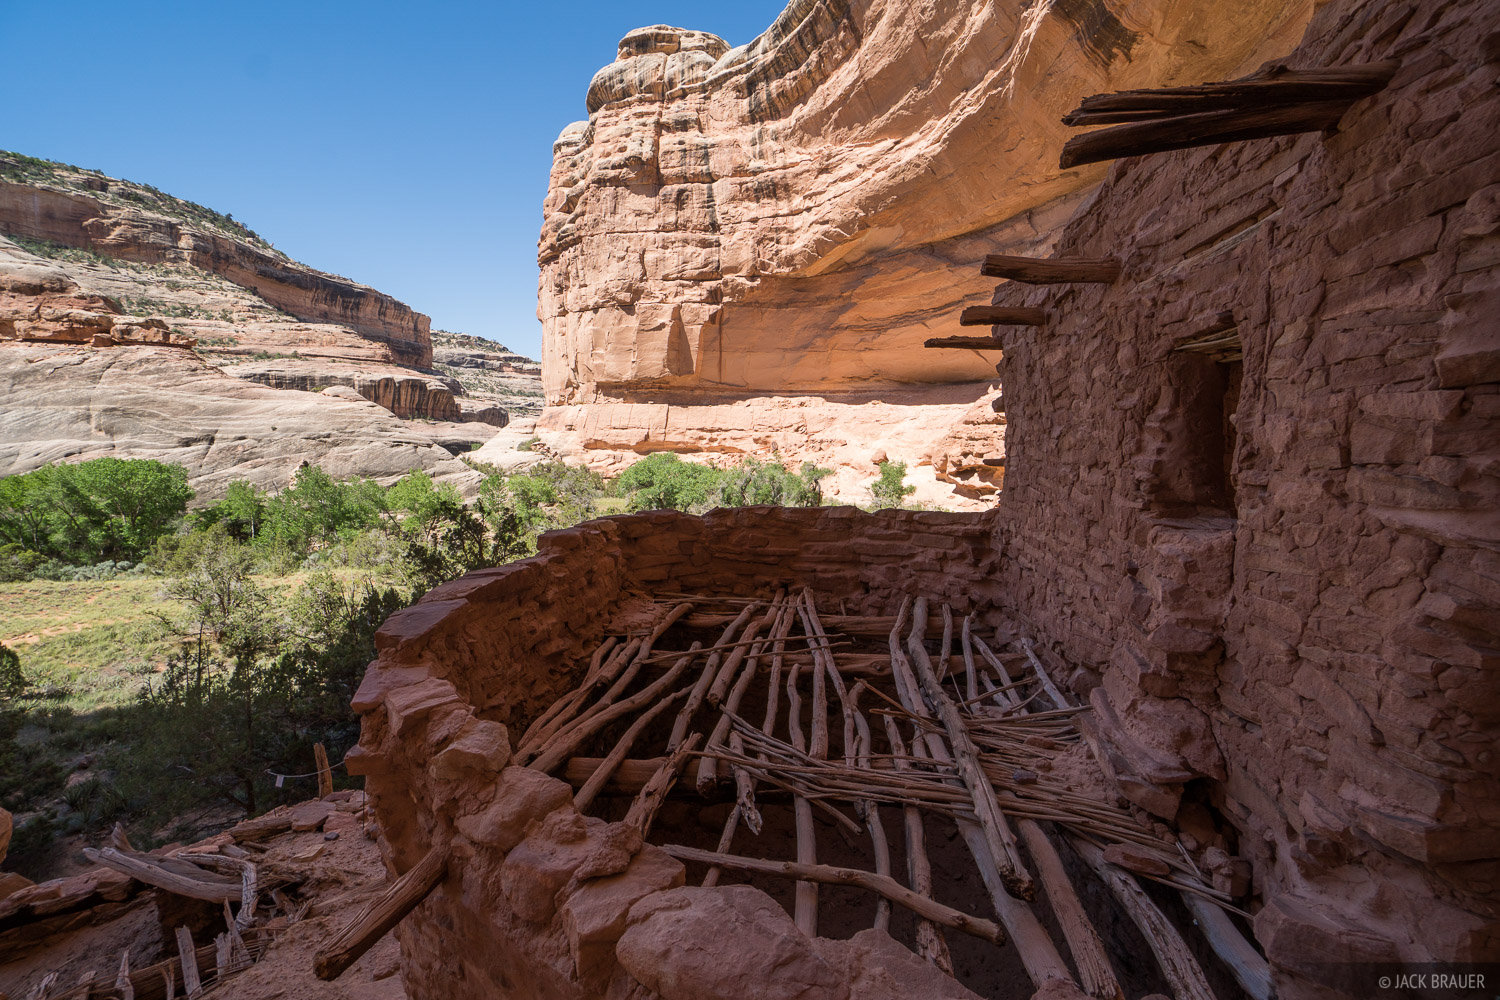 Ancestral Puebloan ruins overlook the canyon bottom where corn and other vegetables were grown approximately 1000-700 years ago...